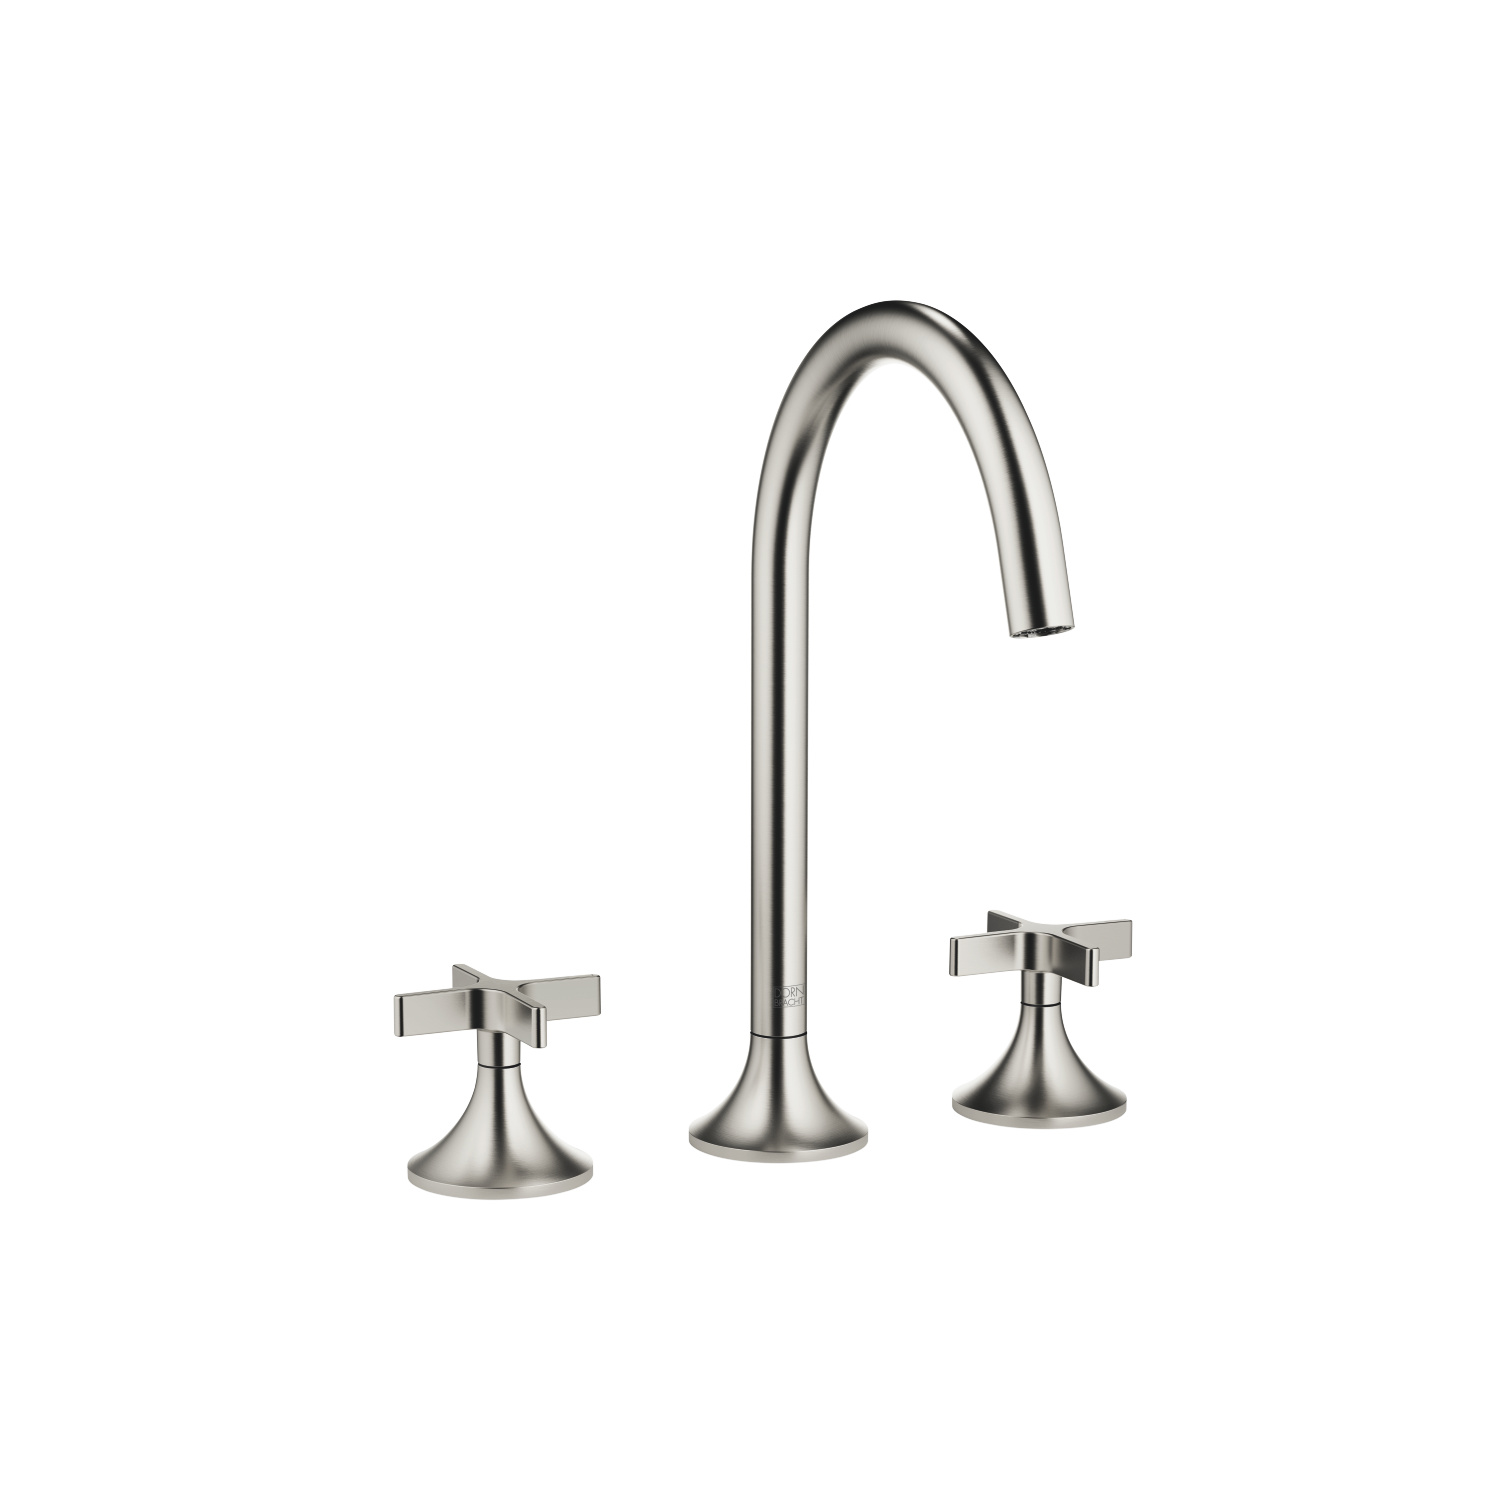 Three-hole lavatory mixer with drain - platinum matte